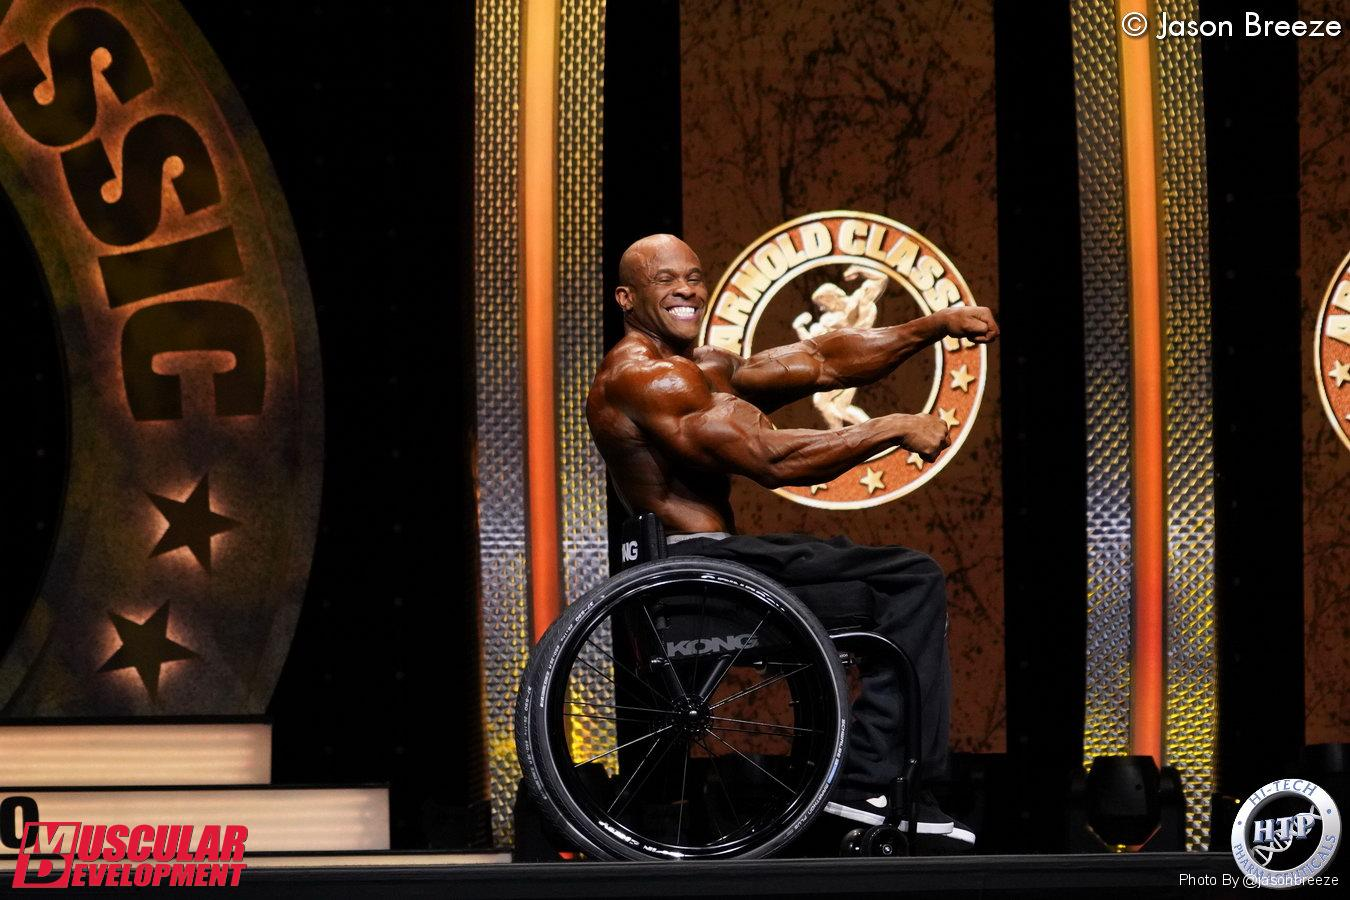 HAROLD KELLEY VINCE L'ARNOLD CLASSIC OHIO 2020 MEN'S WHEELCHAIR BODYBUILDING